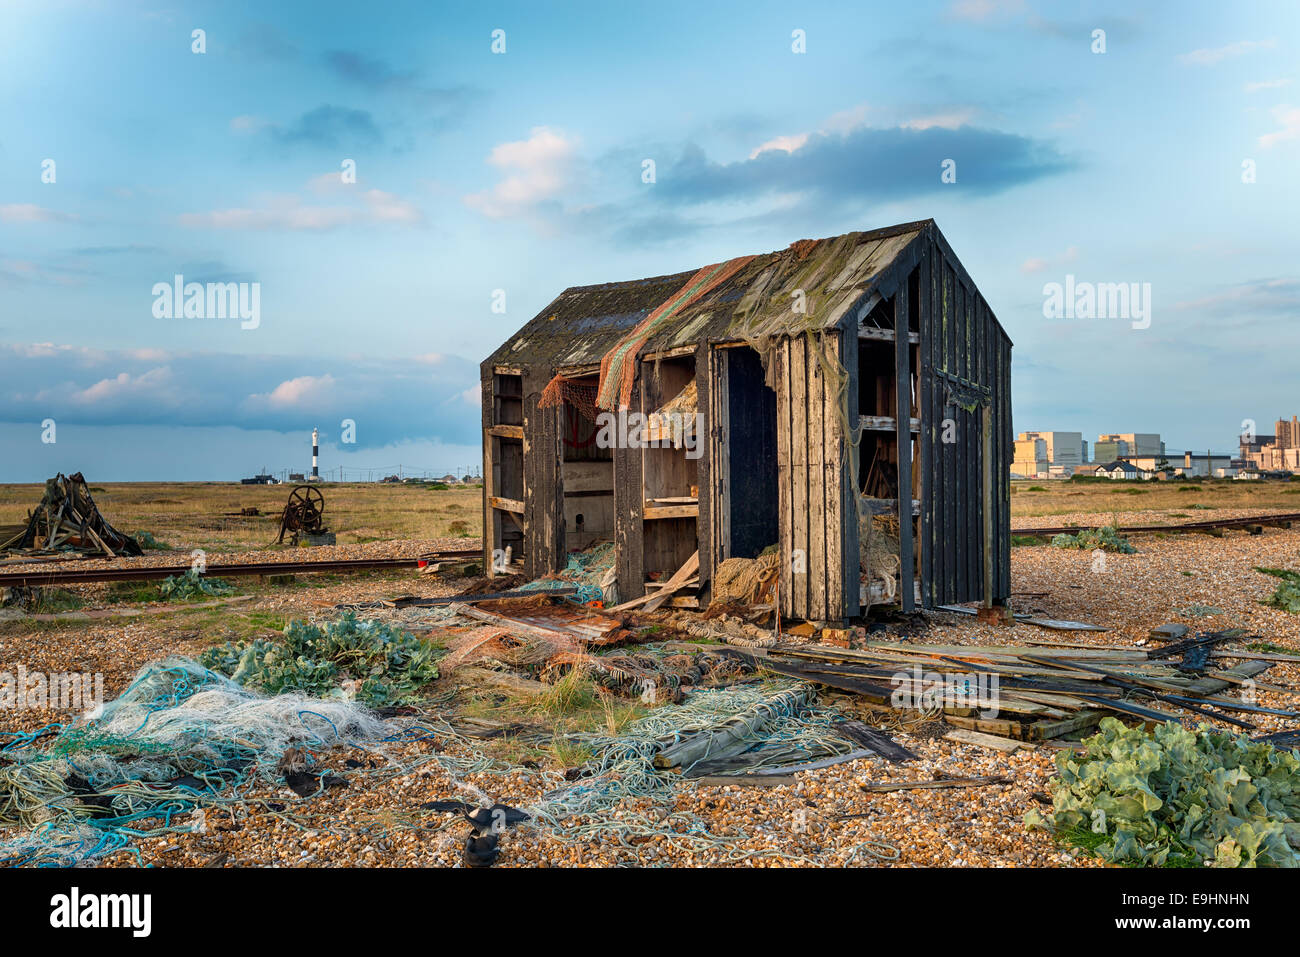 An abandoned fisherman's hut fallen into ruin and disrepair on Dungeness beach in Kent - Stock Image